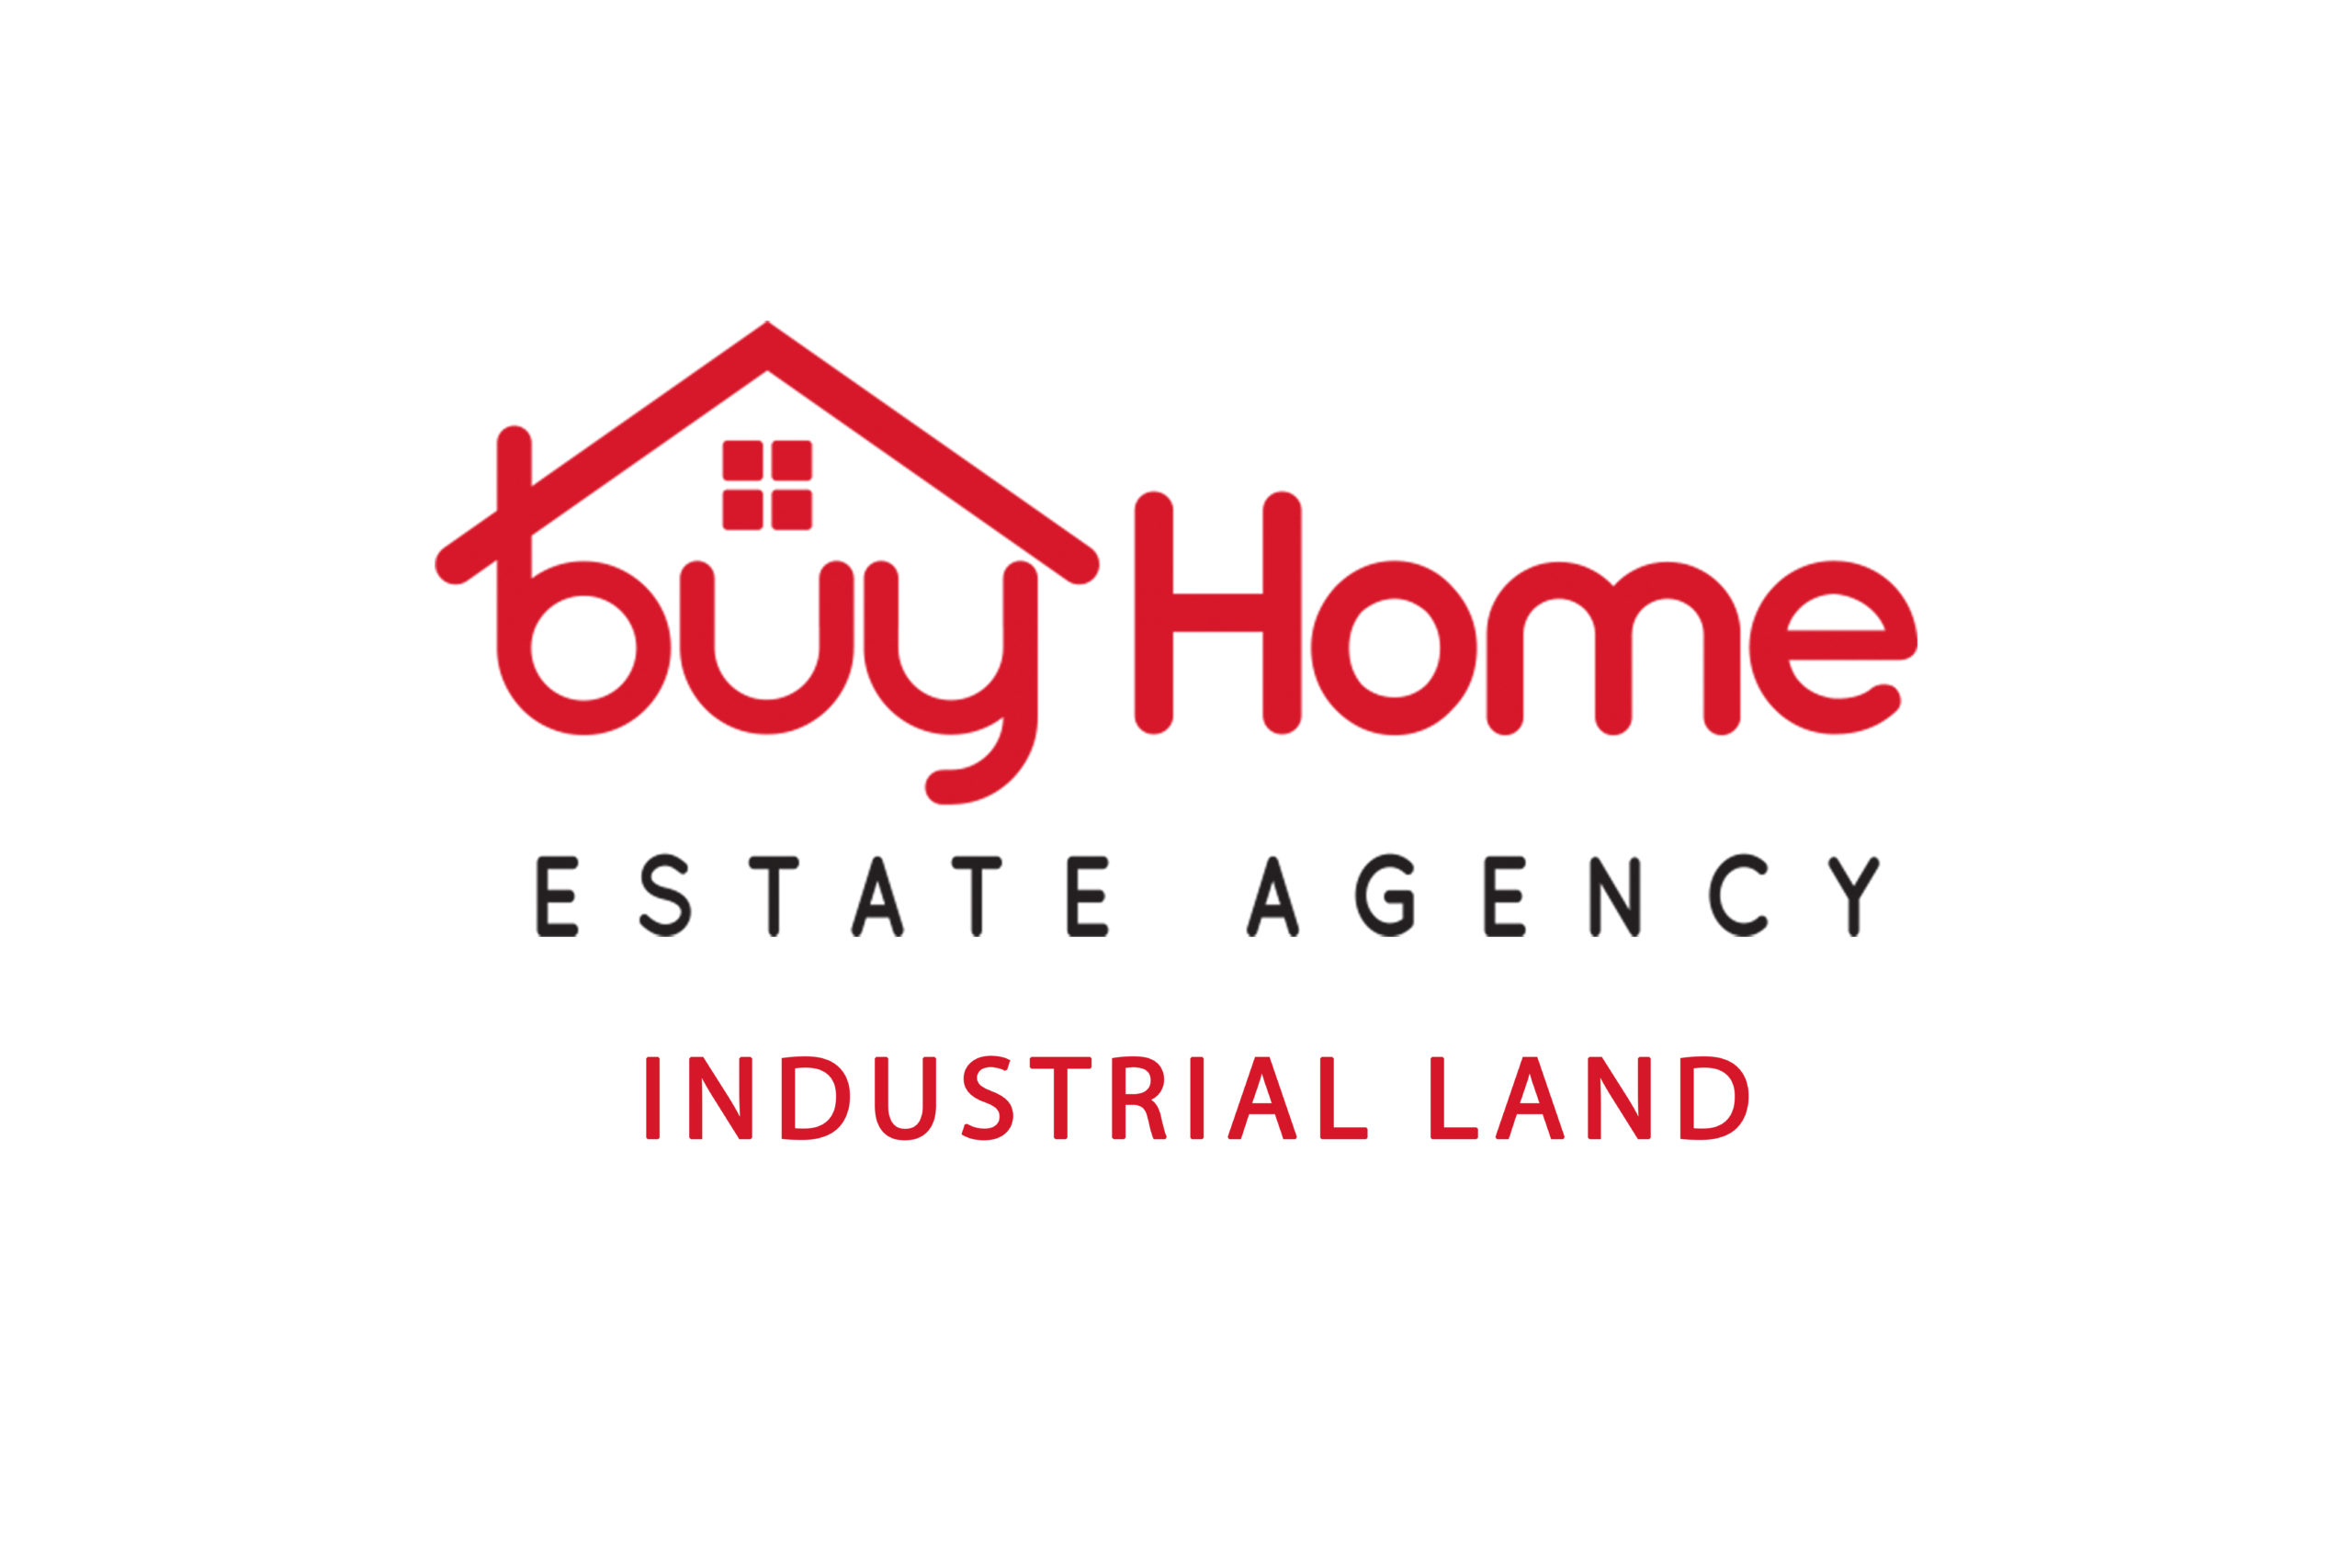 Industrial Land   BuyHome